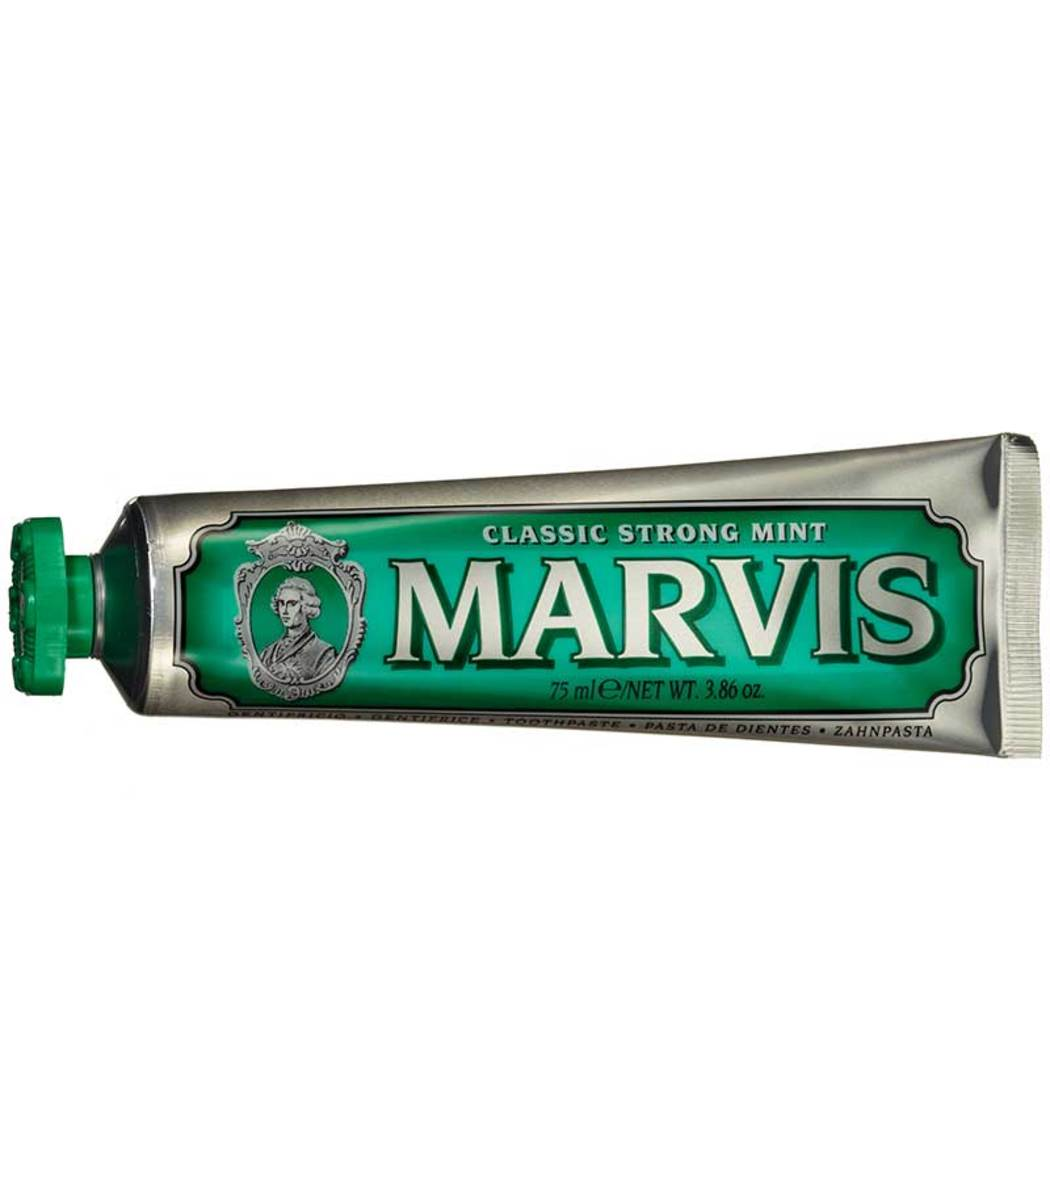 Marvis' Mint Toothpaste Classic Strong Mint